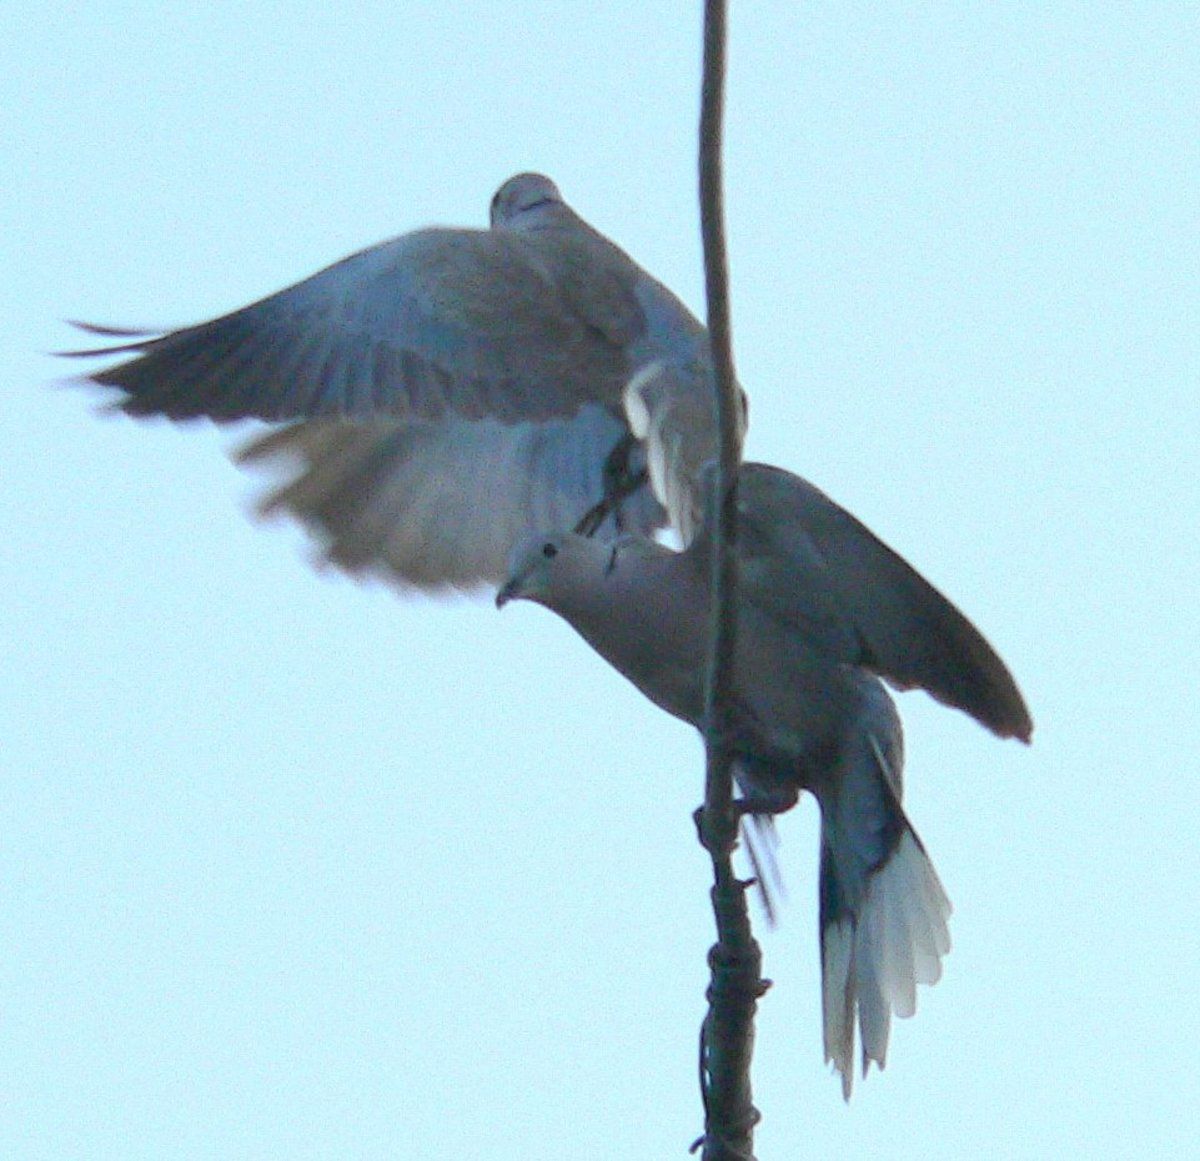 Another quick tussle before the birds mate